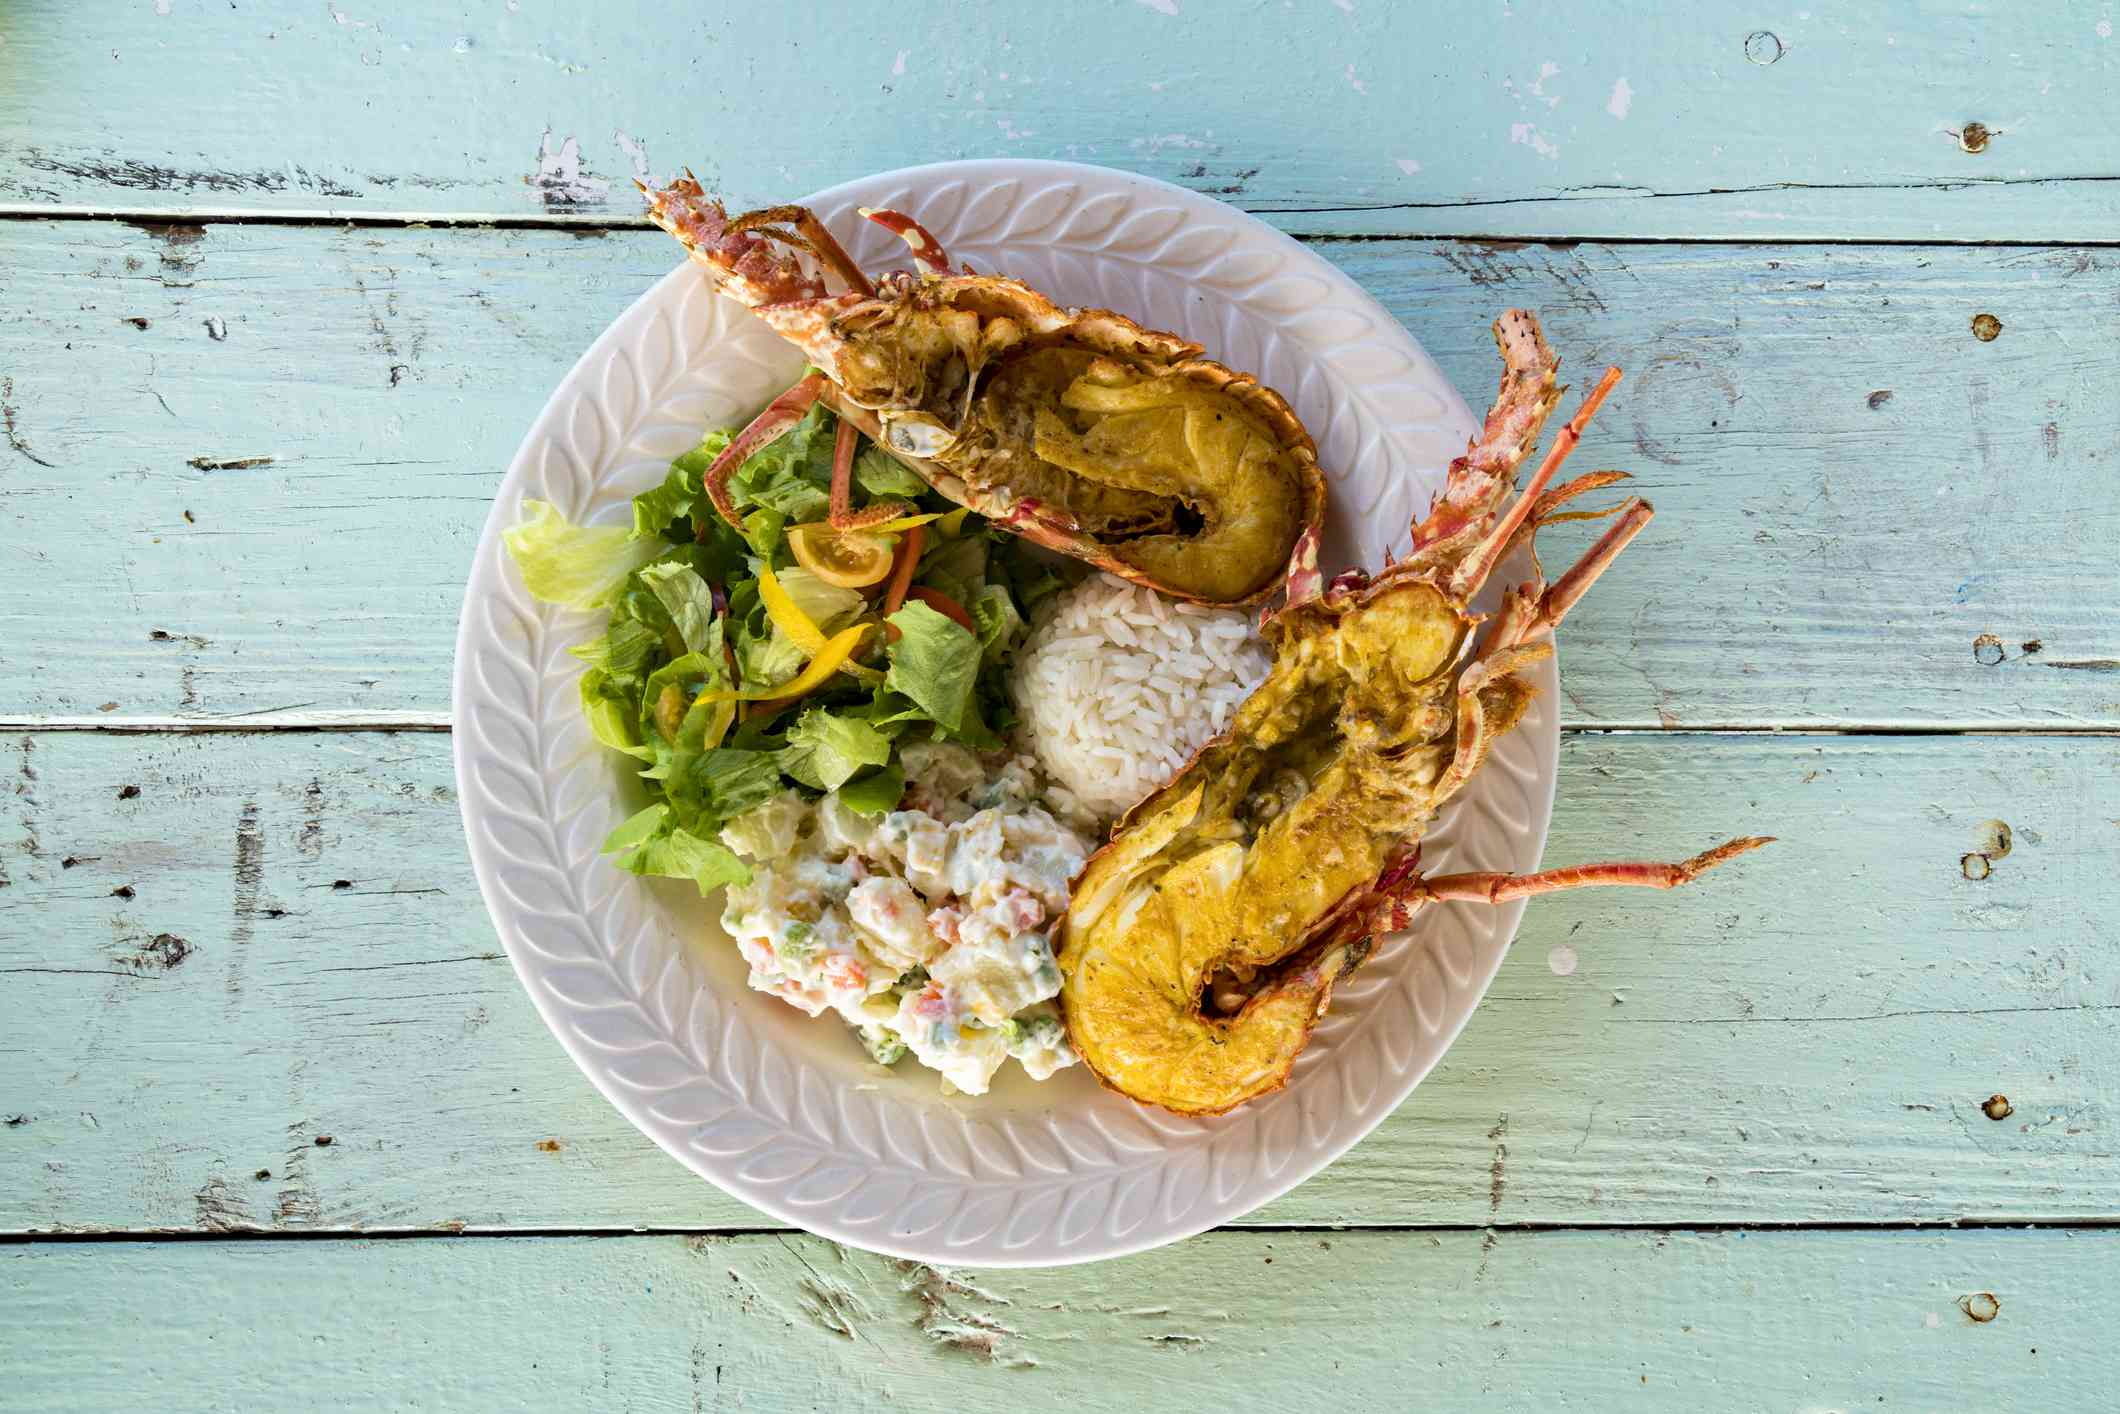 Dish with fresh lobster, rice and vegetables, Caribbean